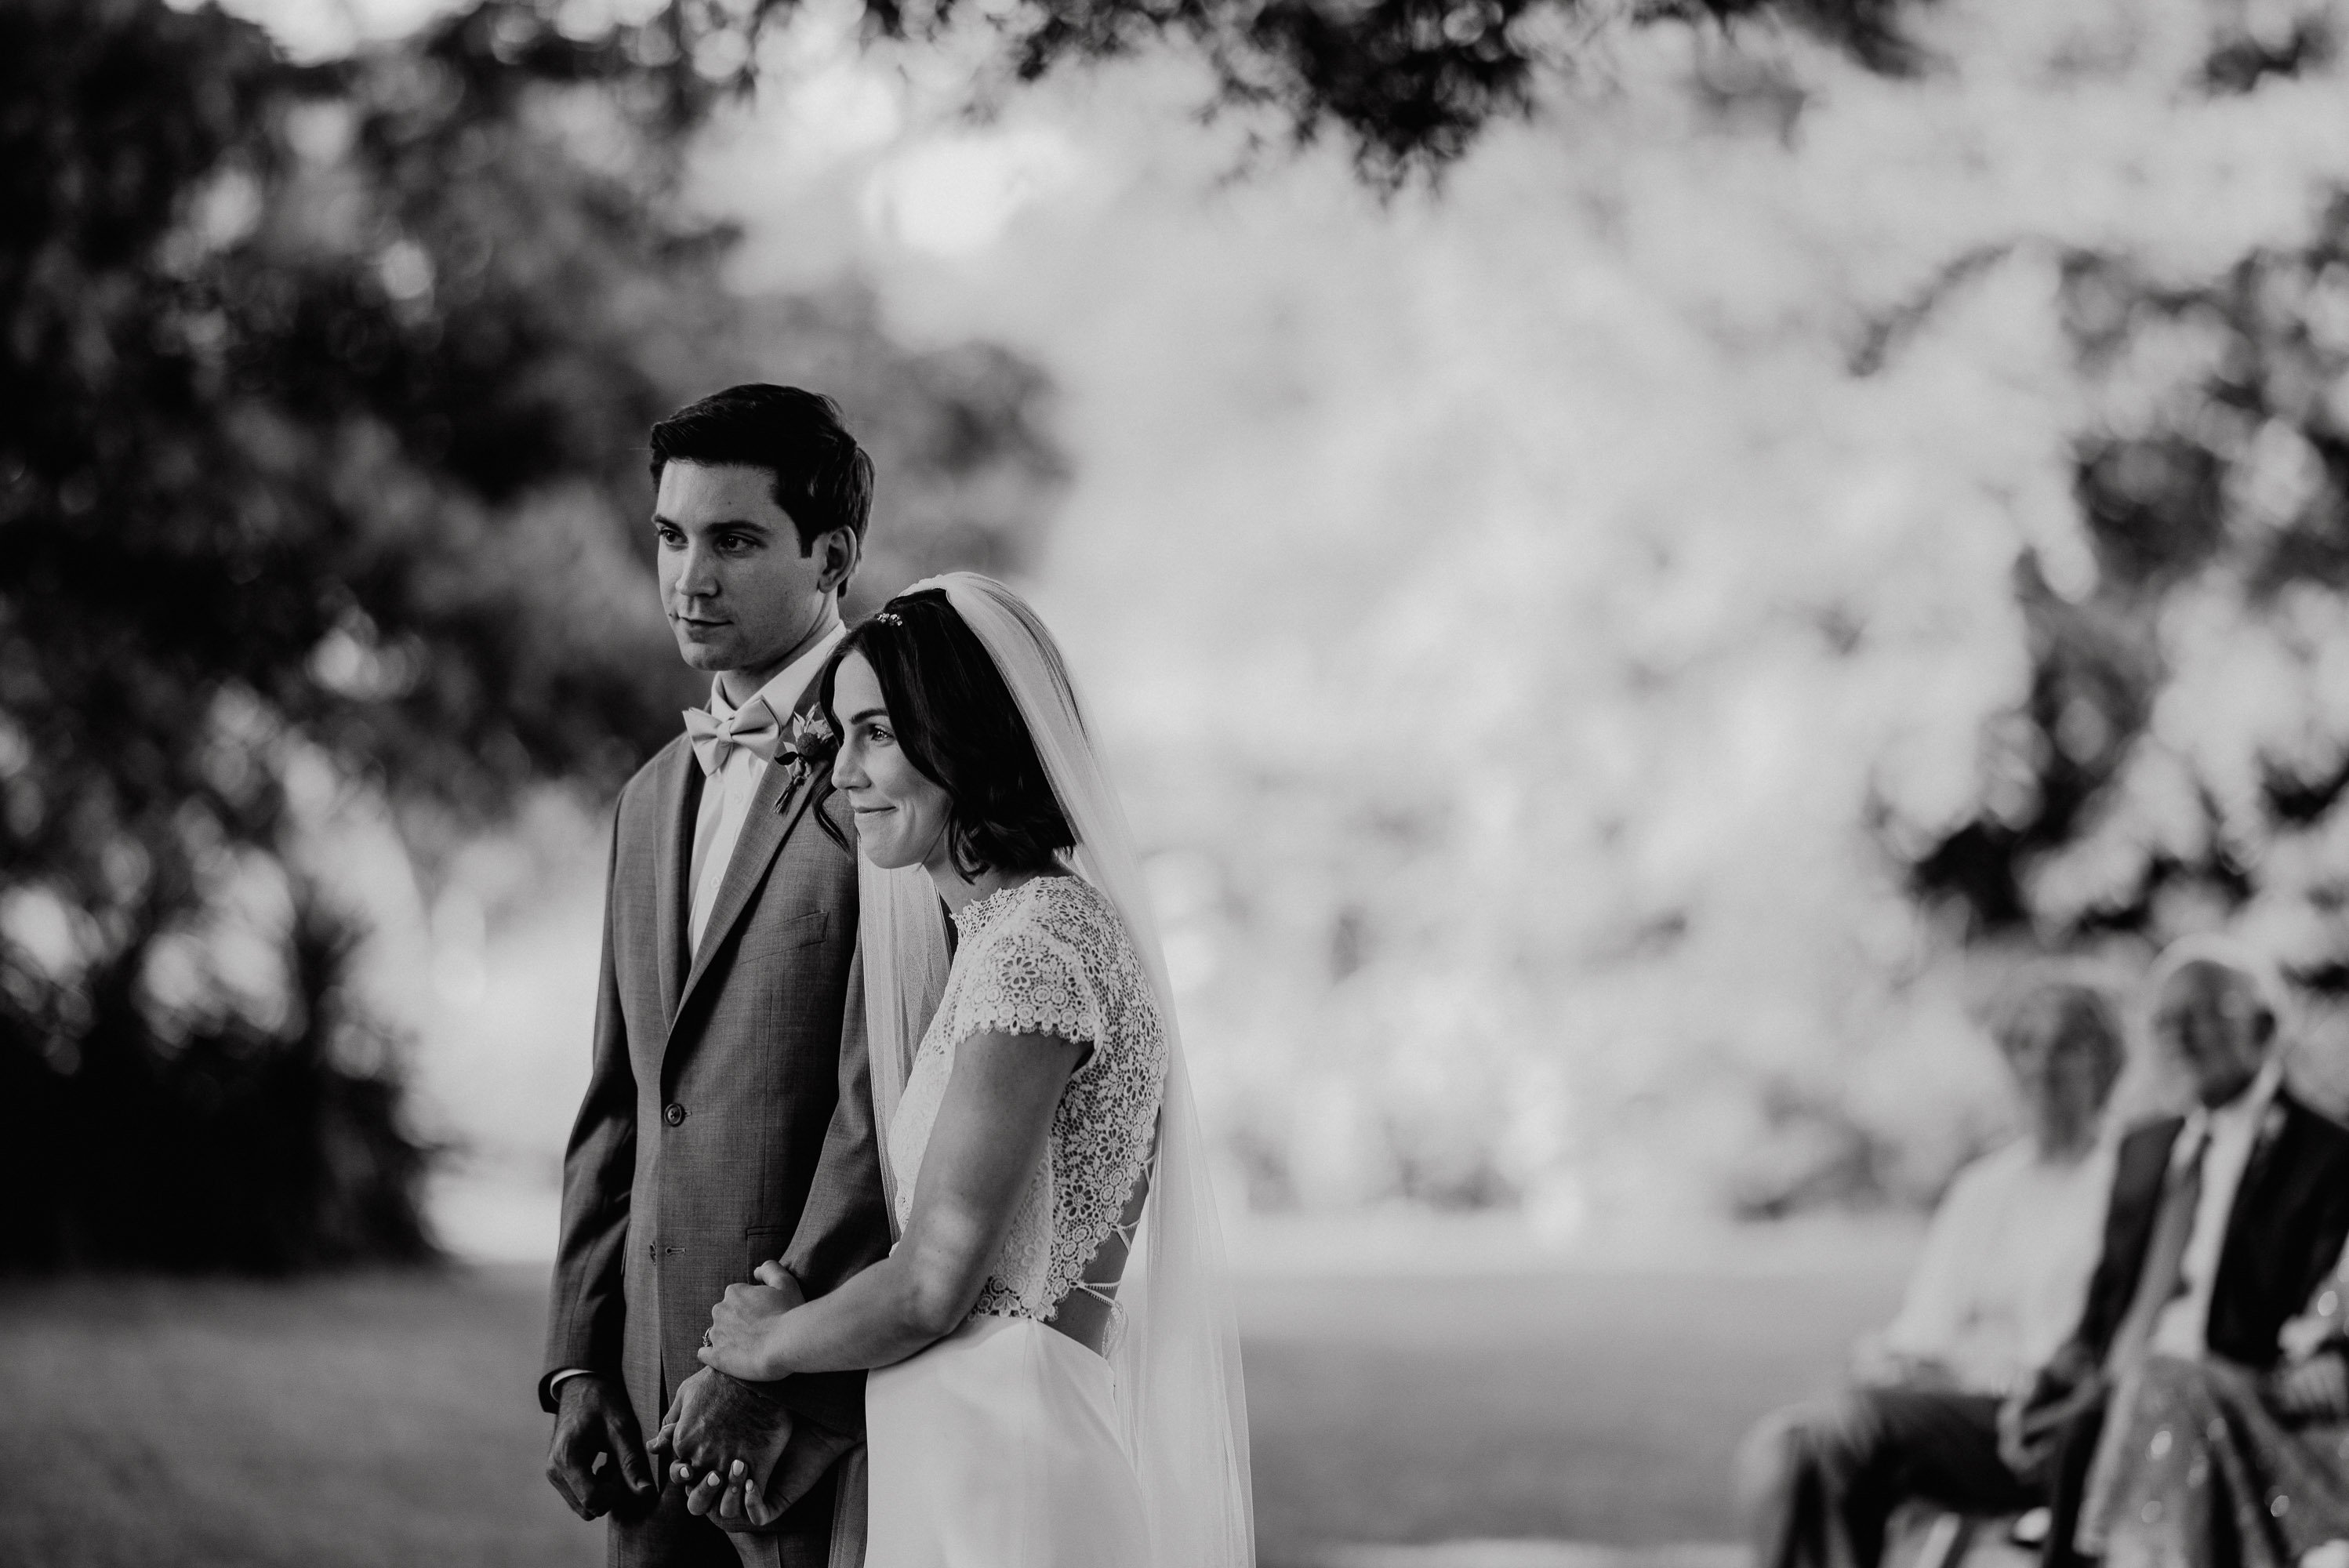 documentary wedding photography for creative and modern couples in austin